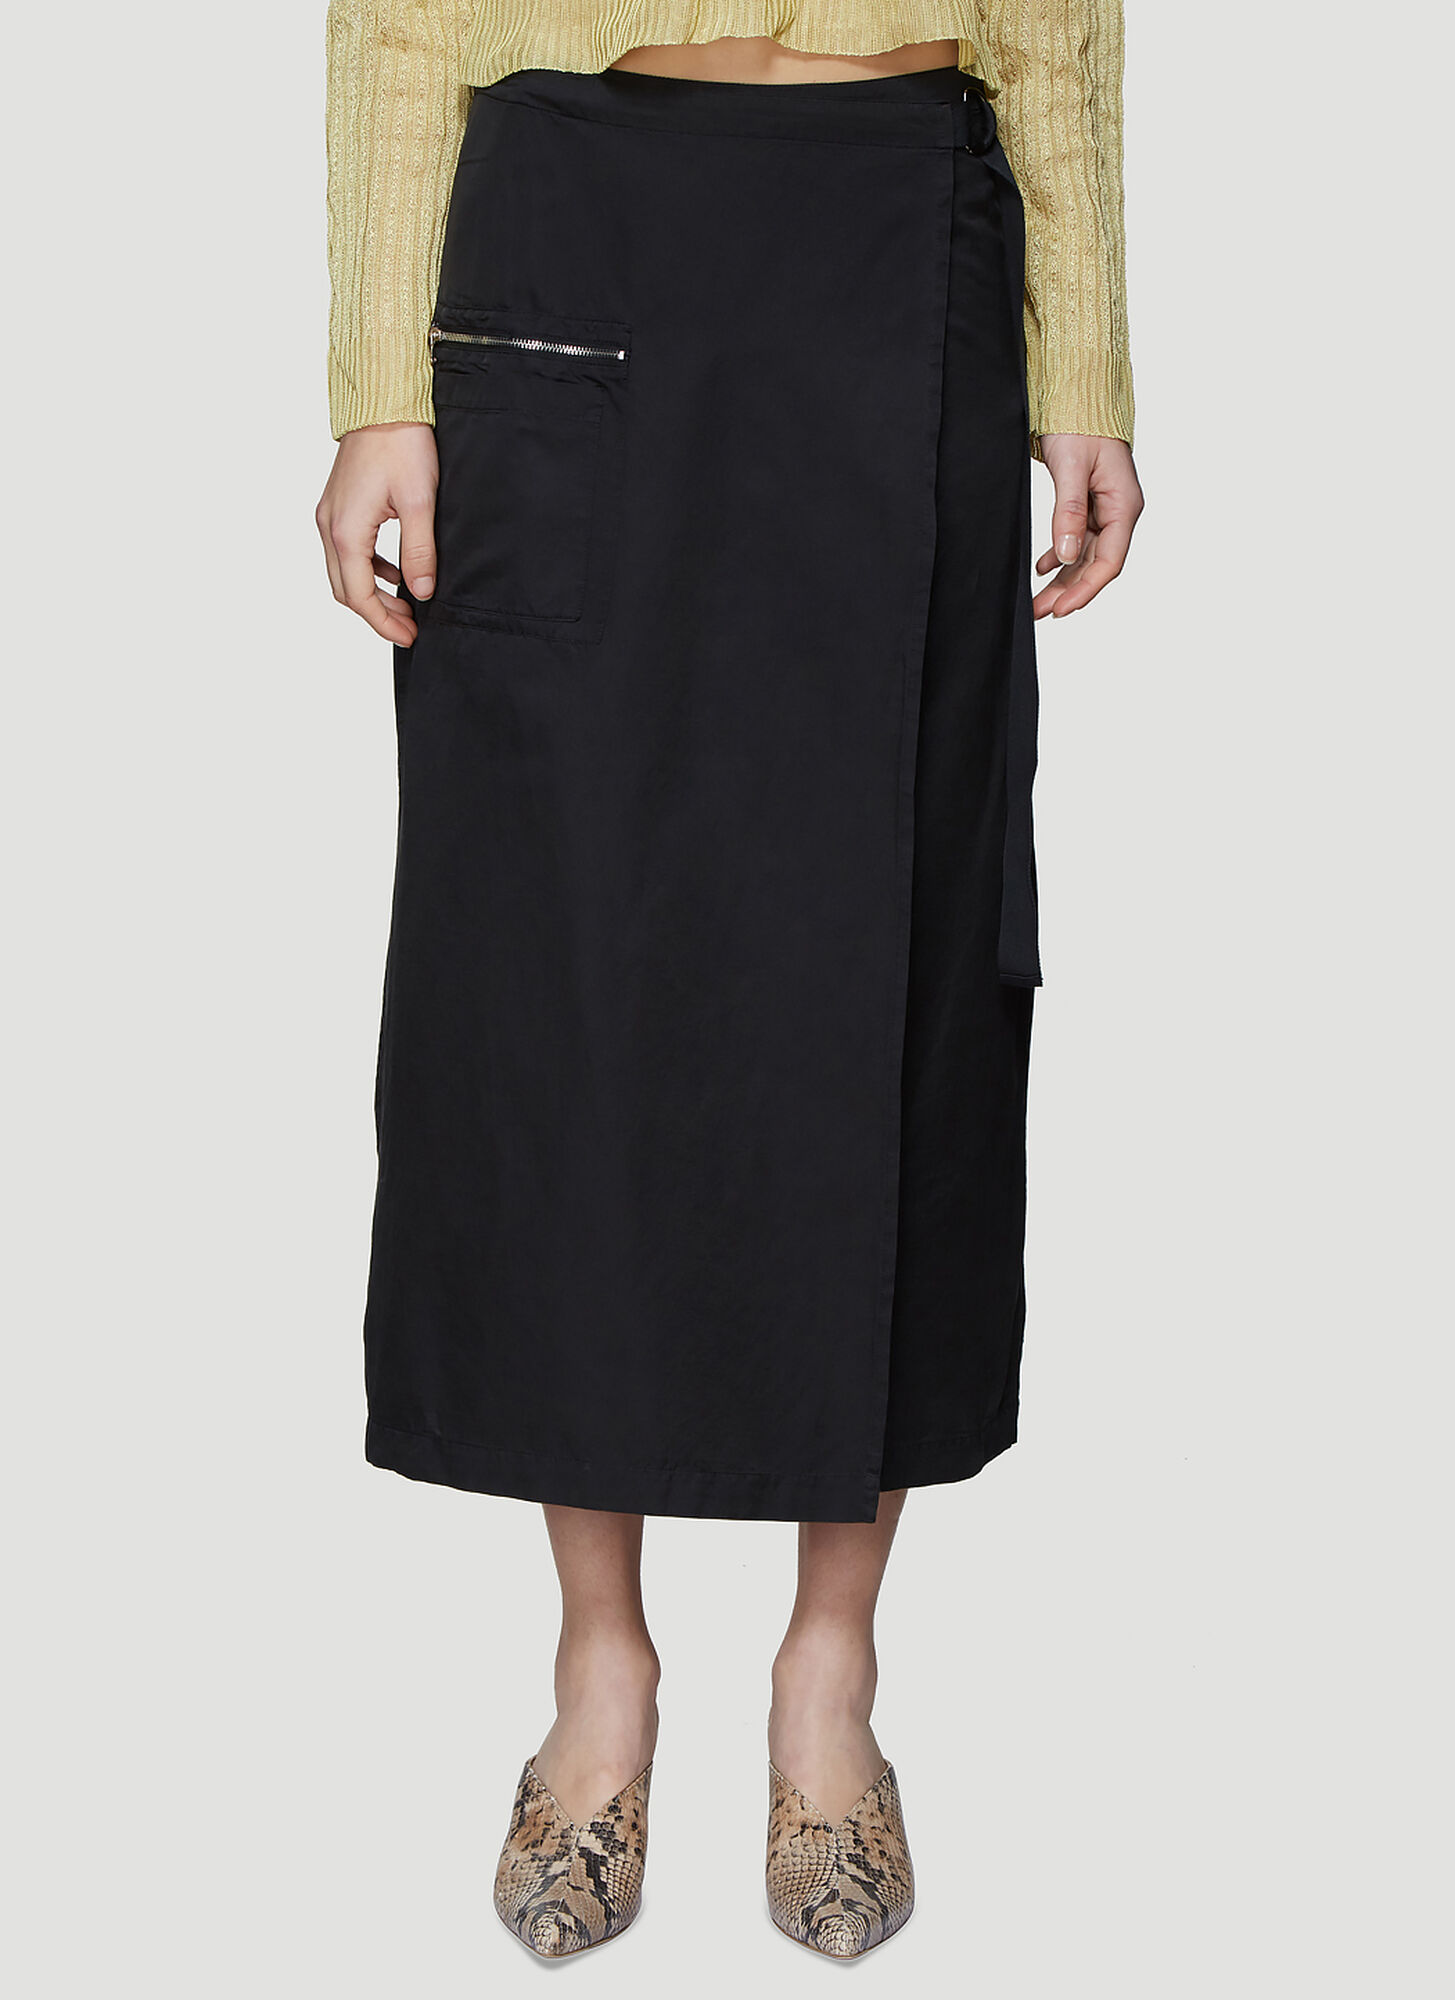 Our Legacy Apron Skirt in Black